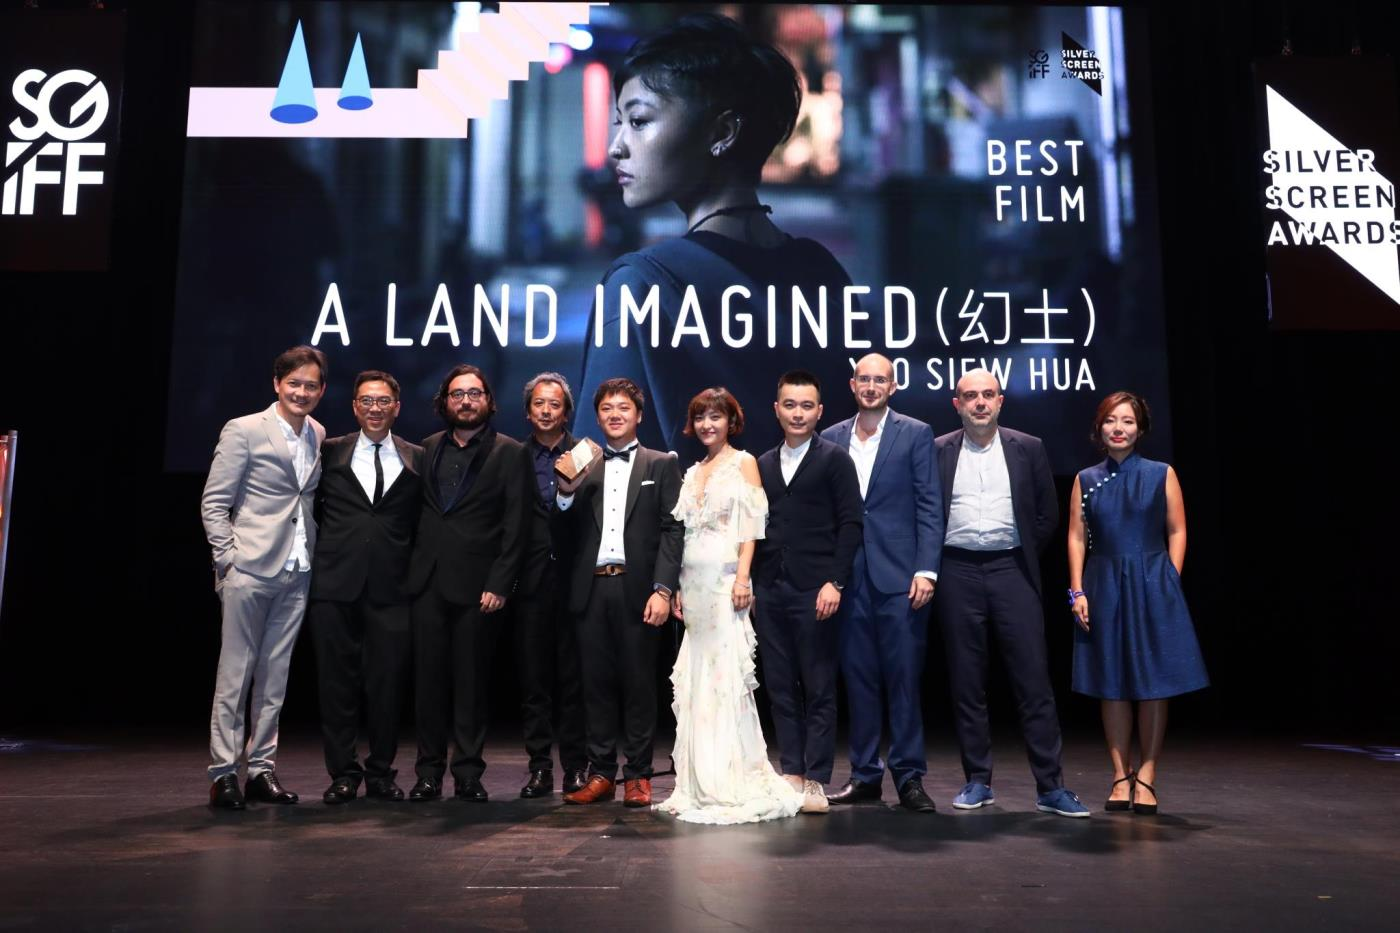 Cast and crew of A Land Imagined at SGIFF Silver Screen Awards